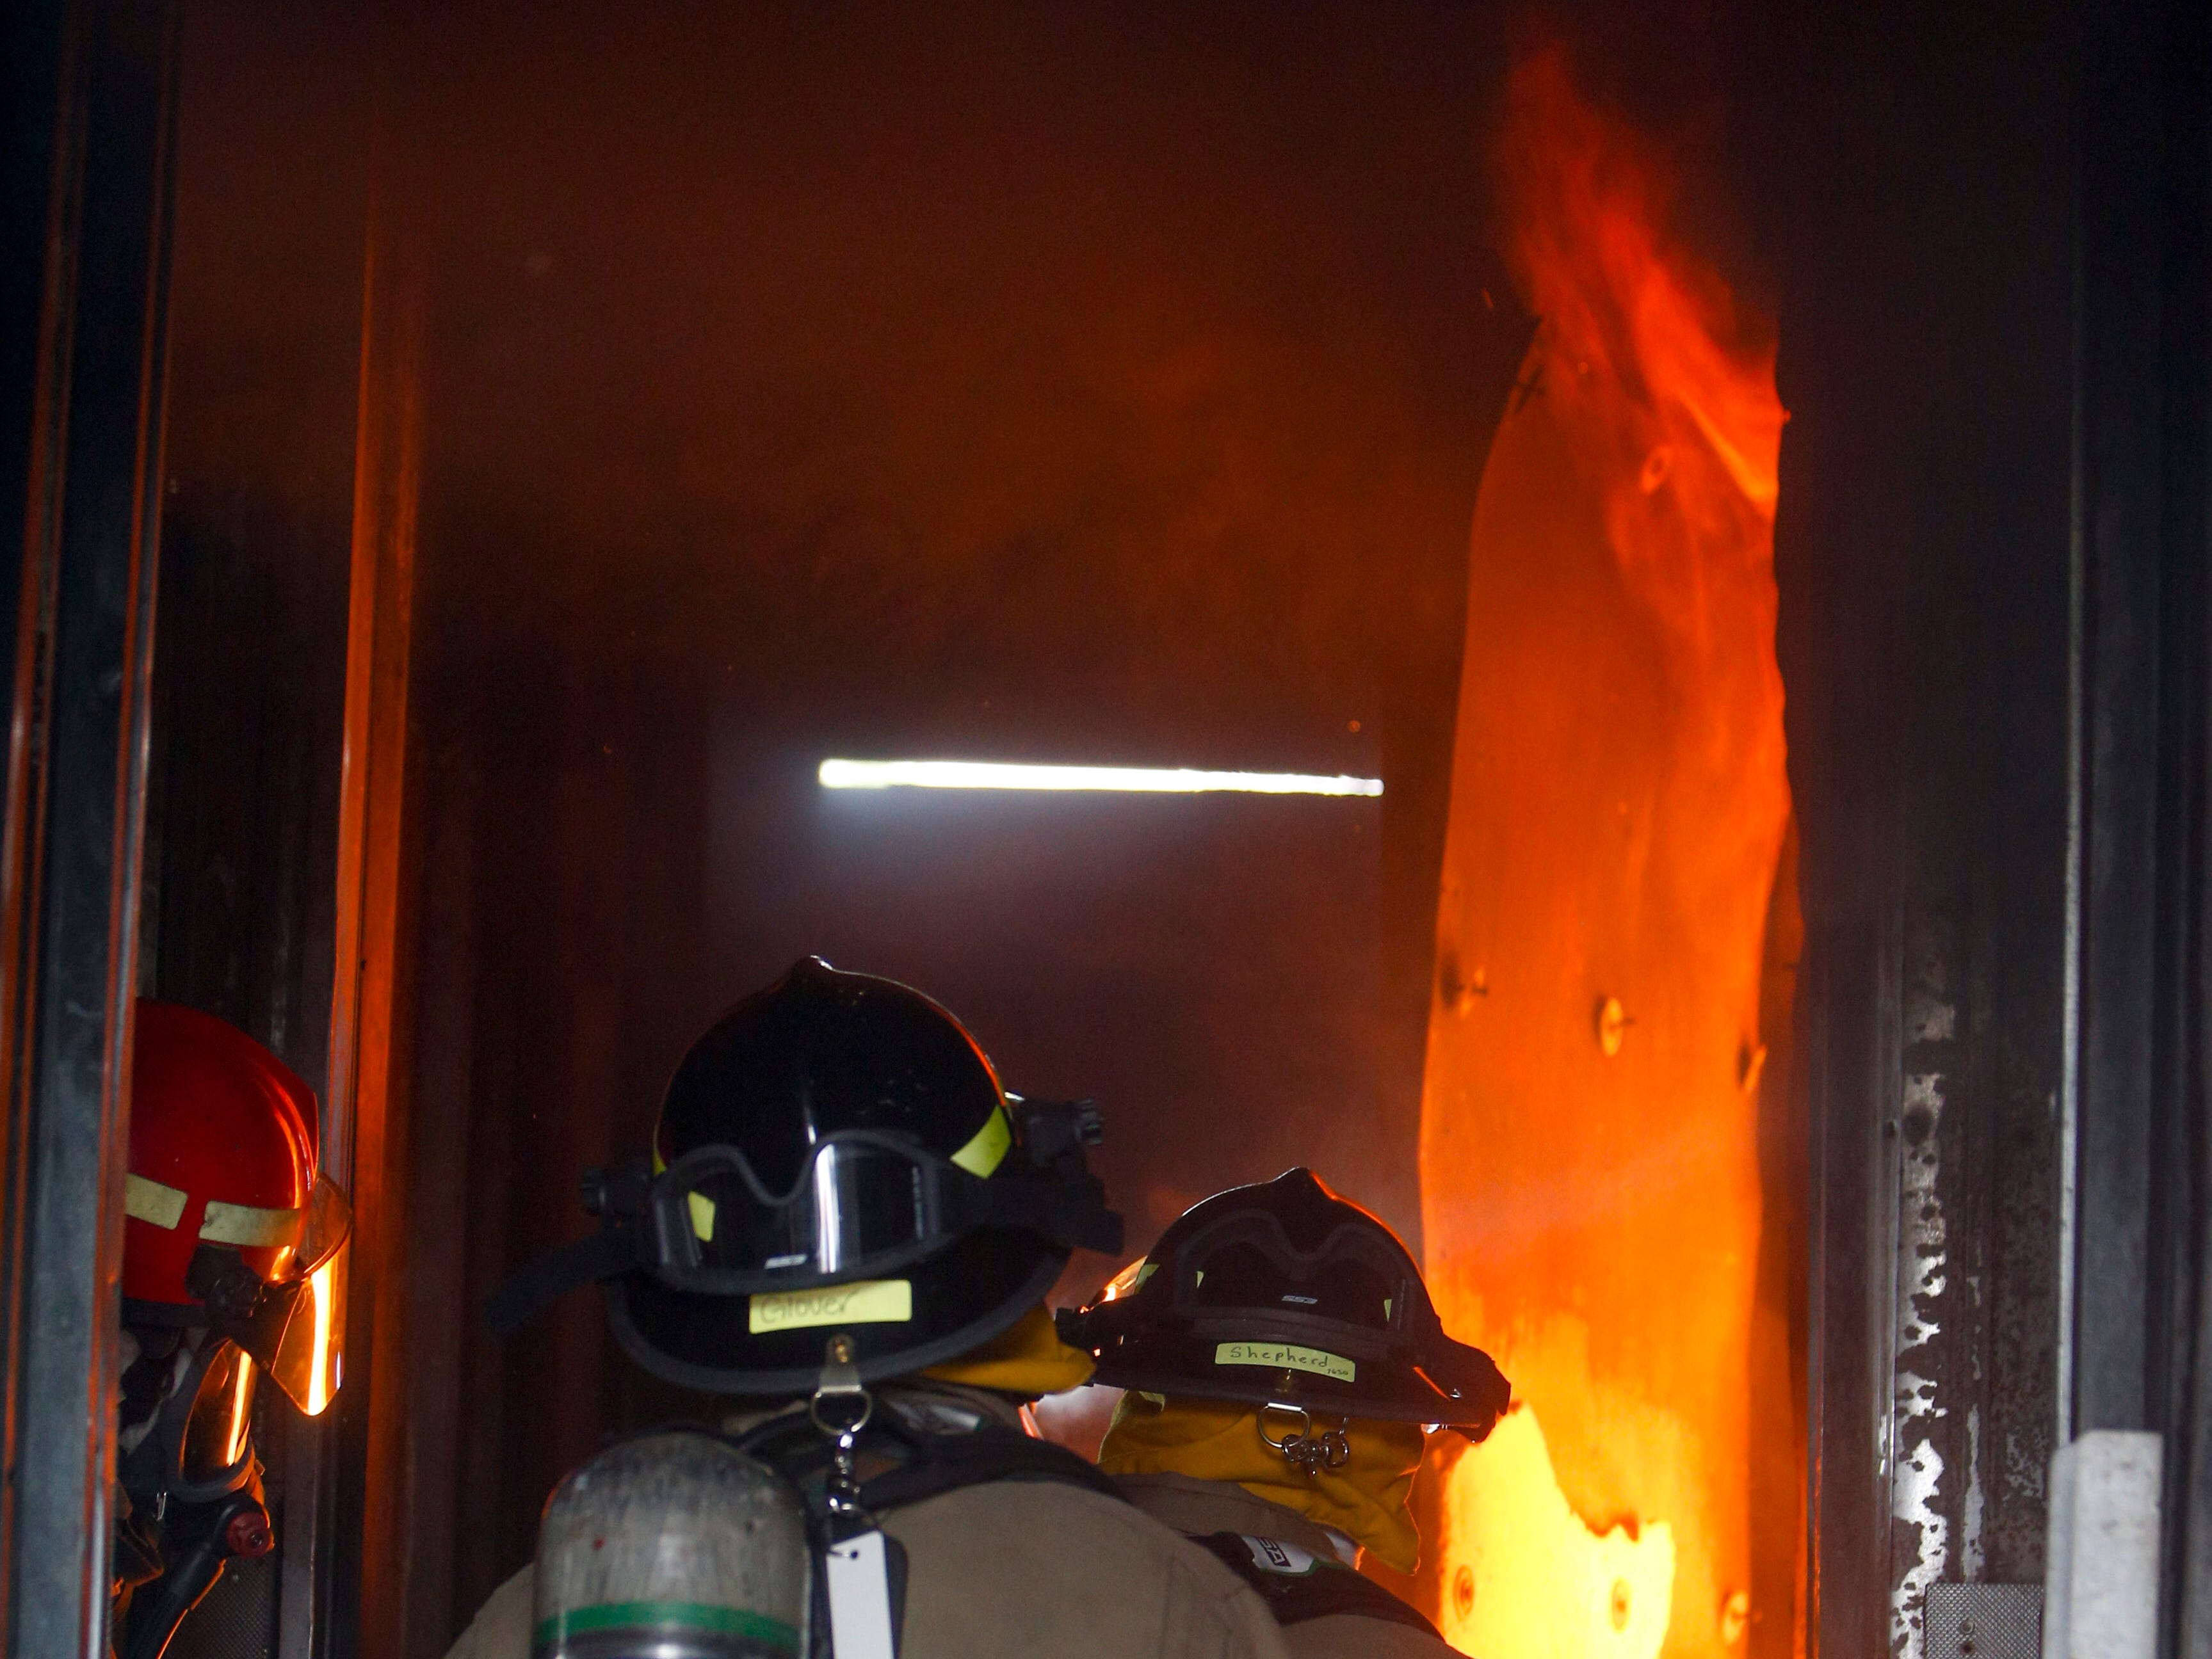 Flames emerge from the rooms during a live fire drill for new recruits at Clarksville Fire Rescue in Clarksville, Tenn., on Friday, May 10, 2019.